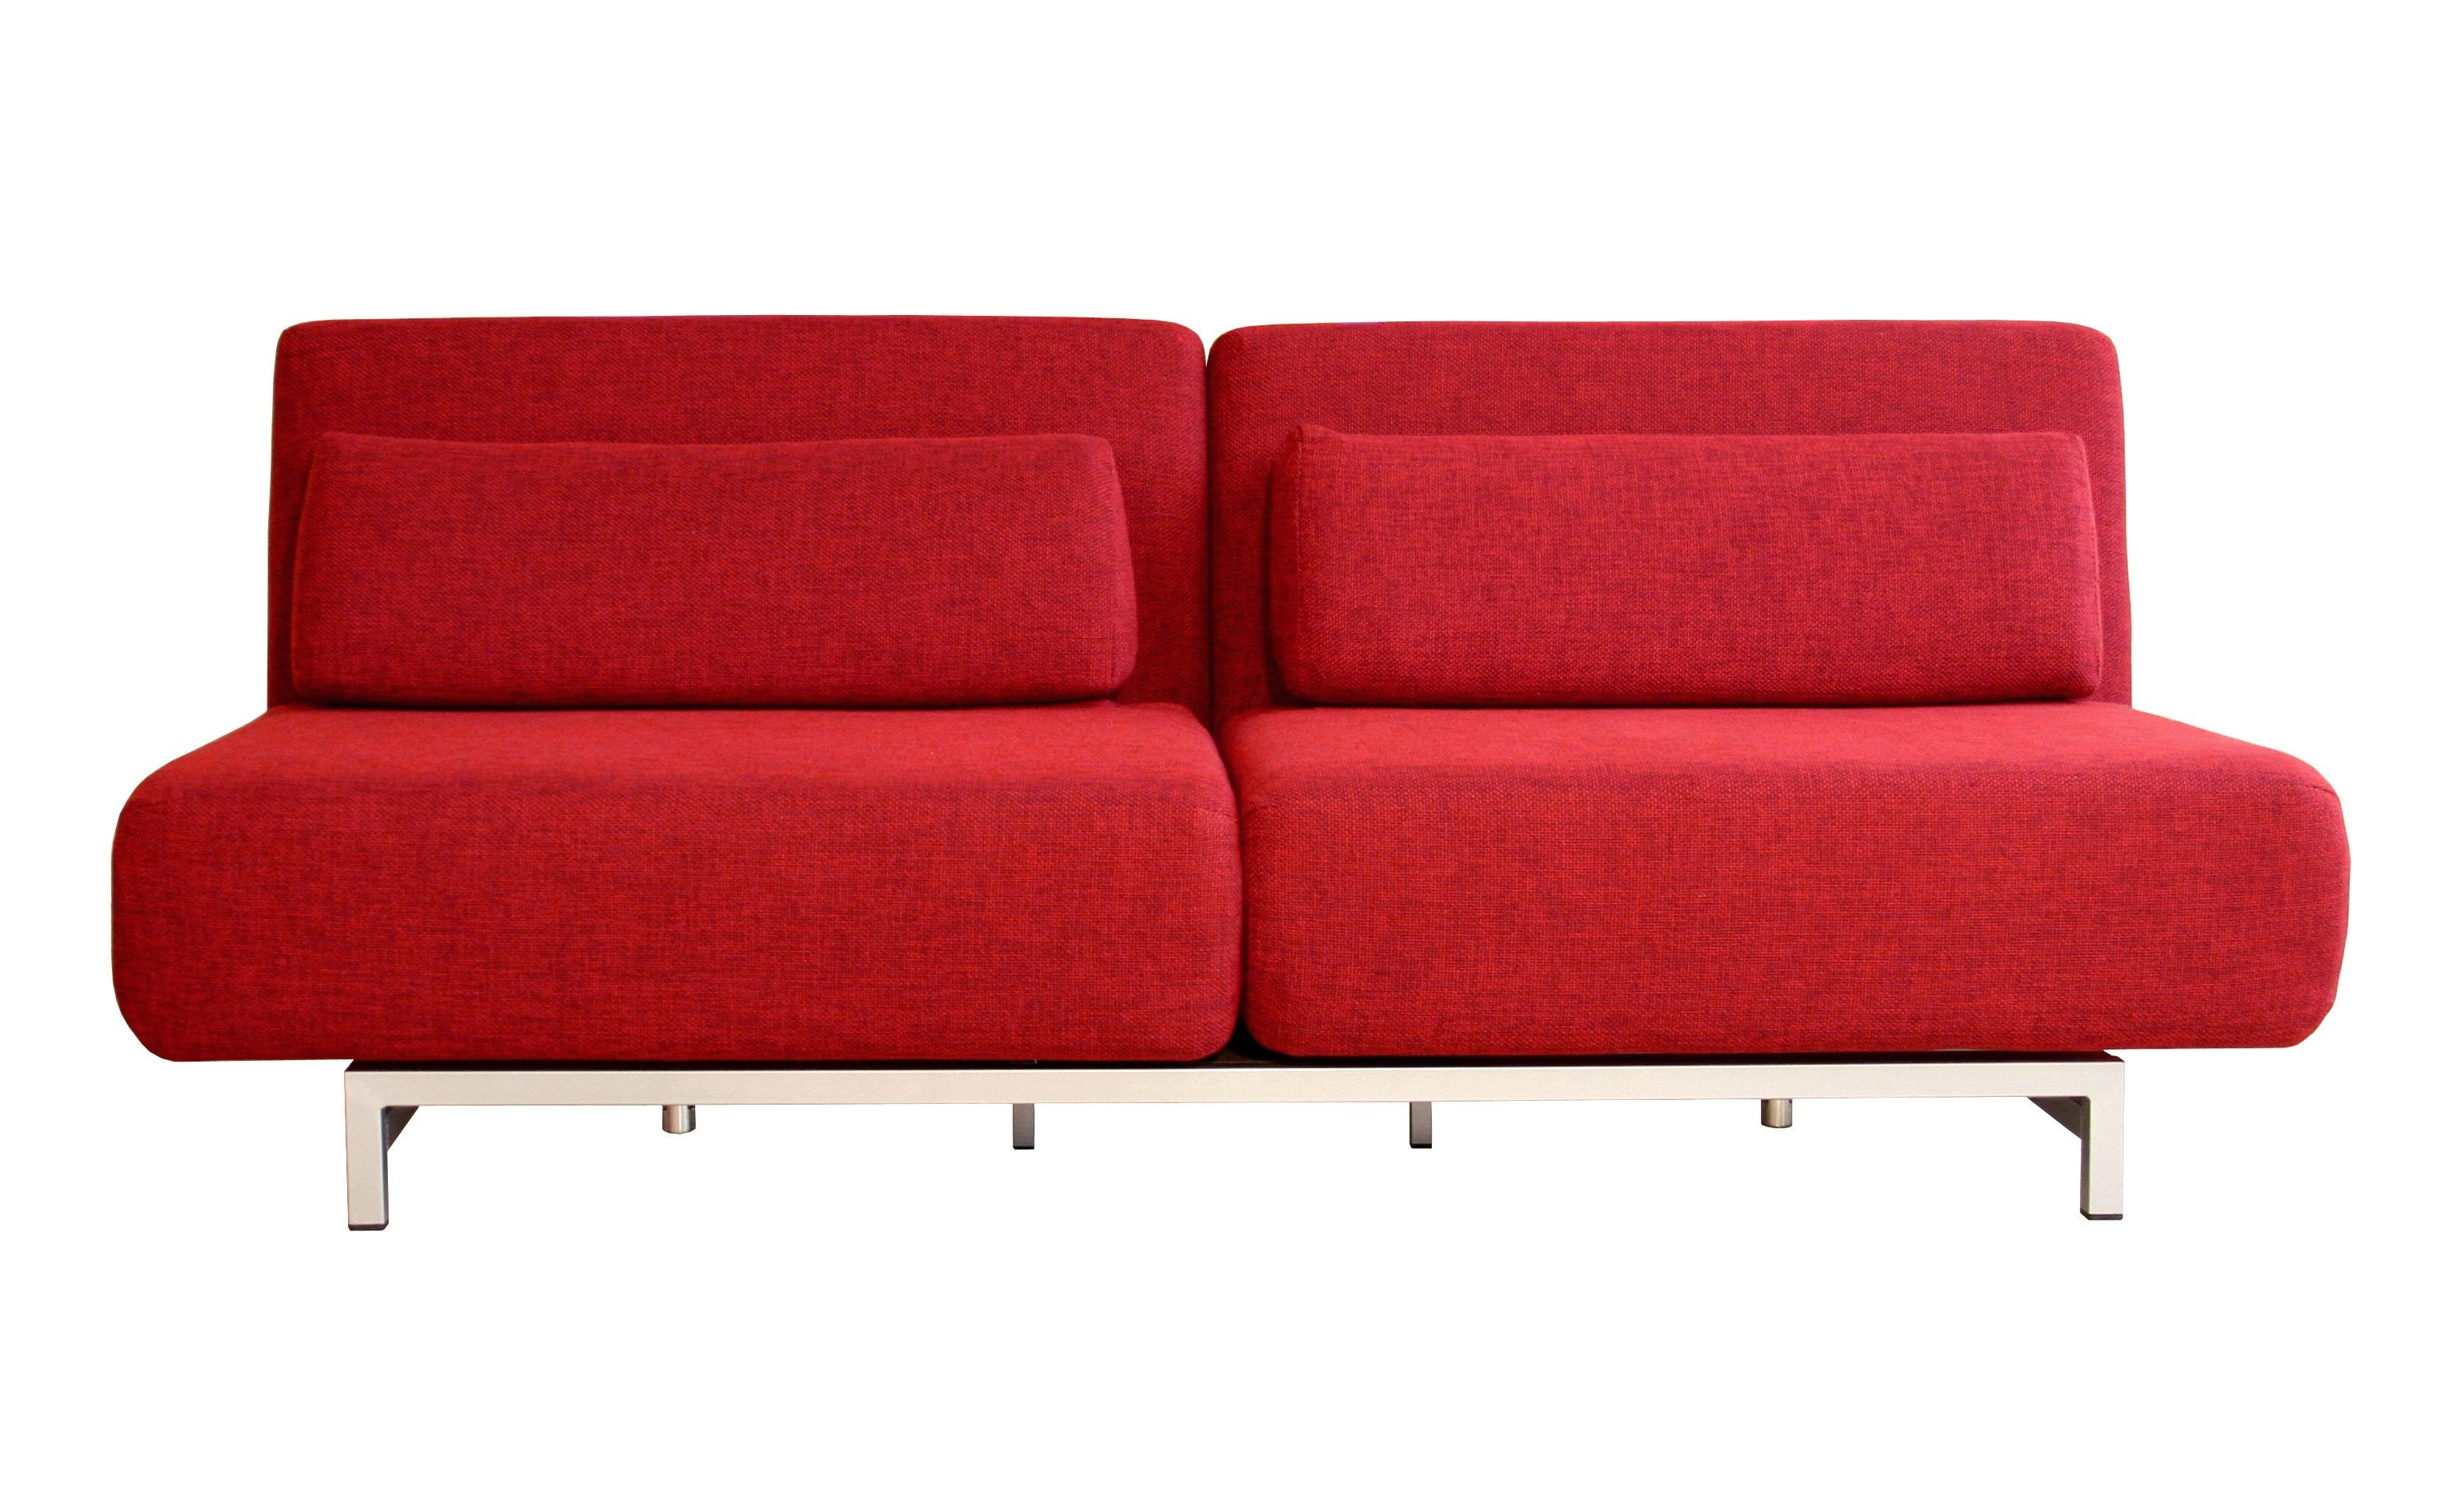 My new bed. Convertible sofa bed, Sofa bed red, Sofa bed